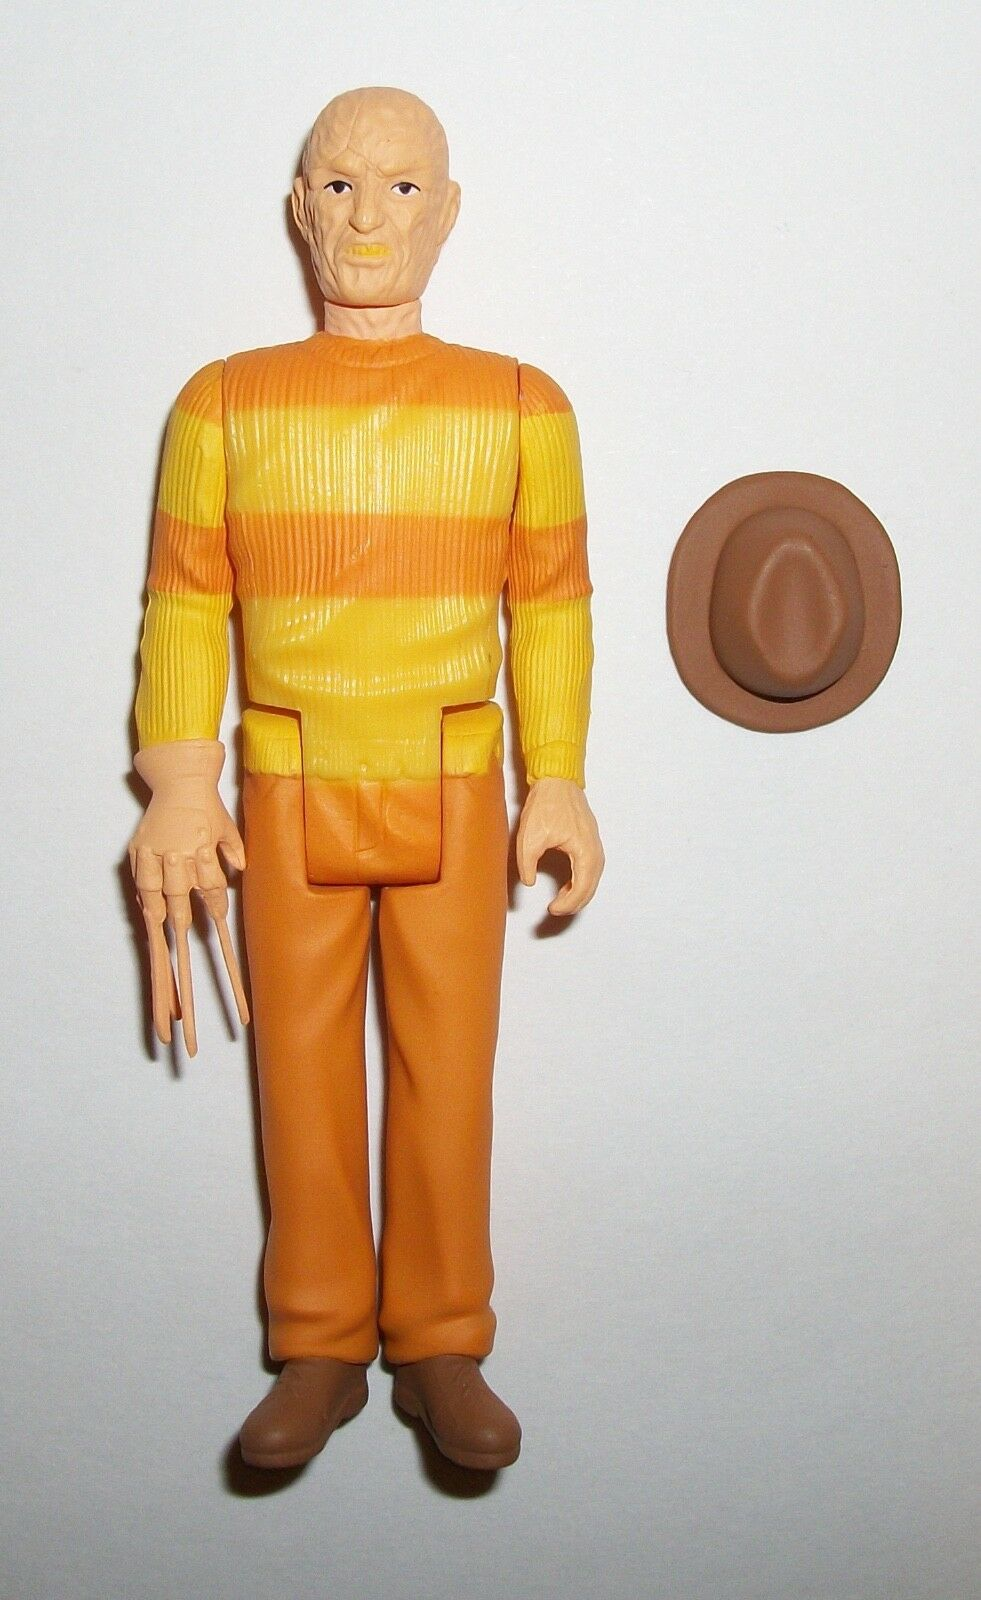 Funko reaktion 8 - bit - nes frotdy krueger 3 3   4 - action - figur nycc exklusiv